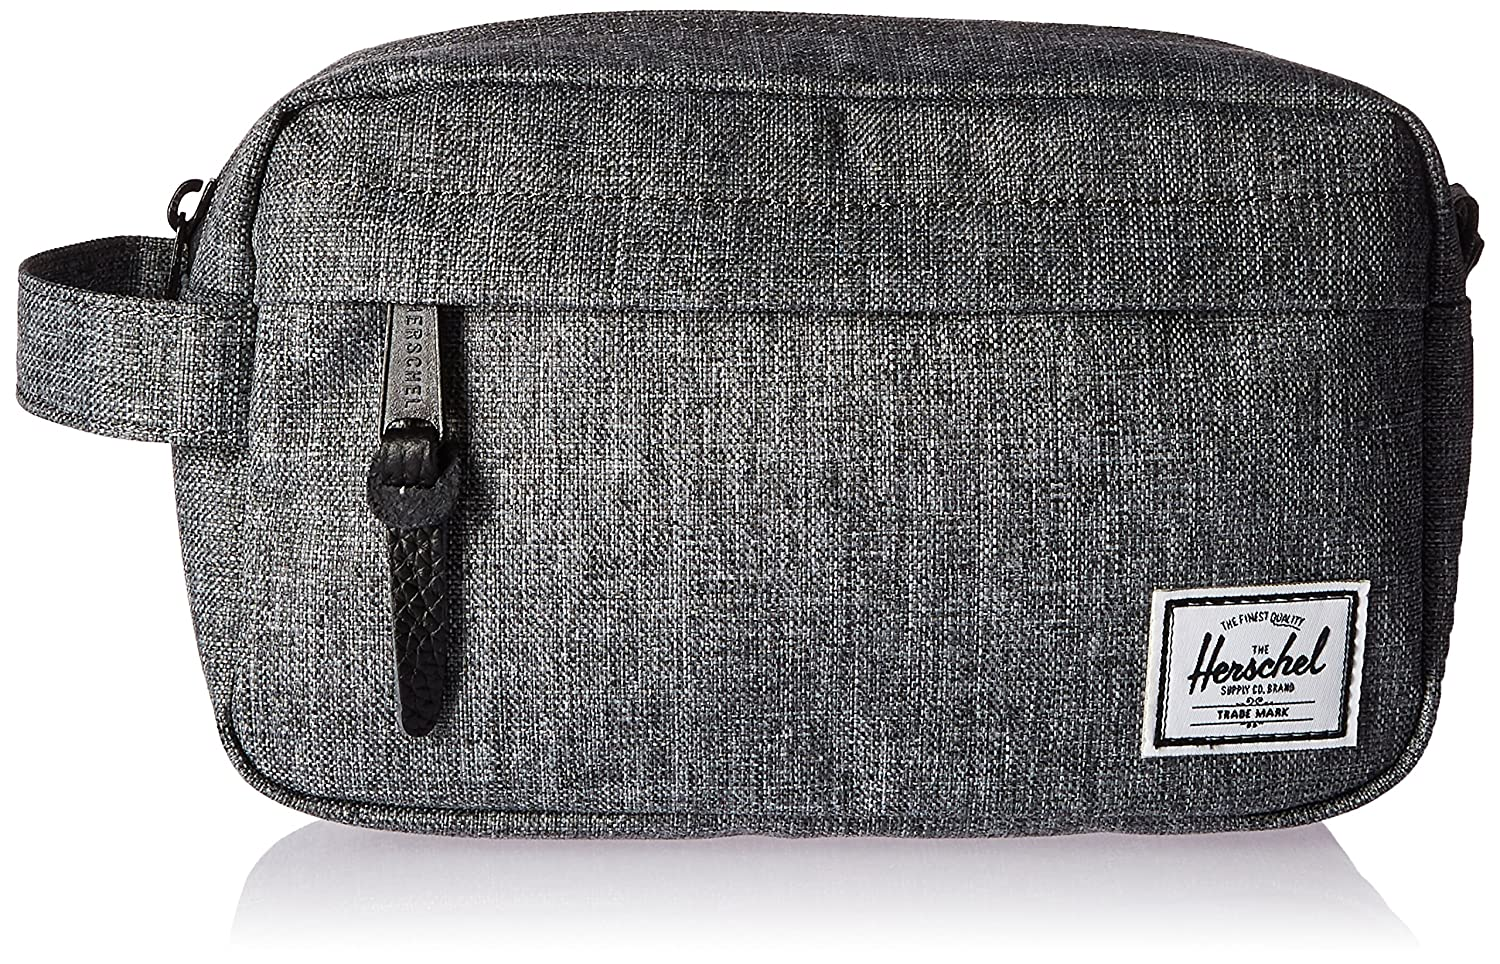 Herschel Toiletry Kit Chapter Carry On Herschel Travel Poliestere 3 I 10347-02090-OS